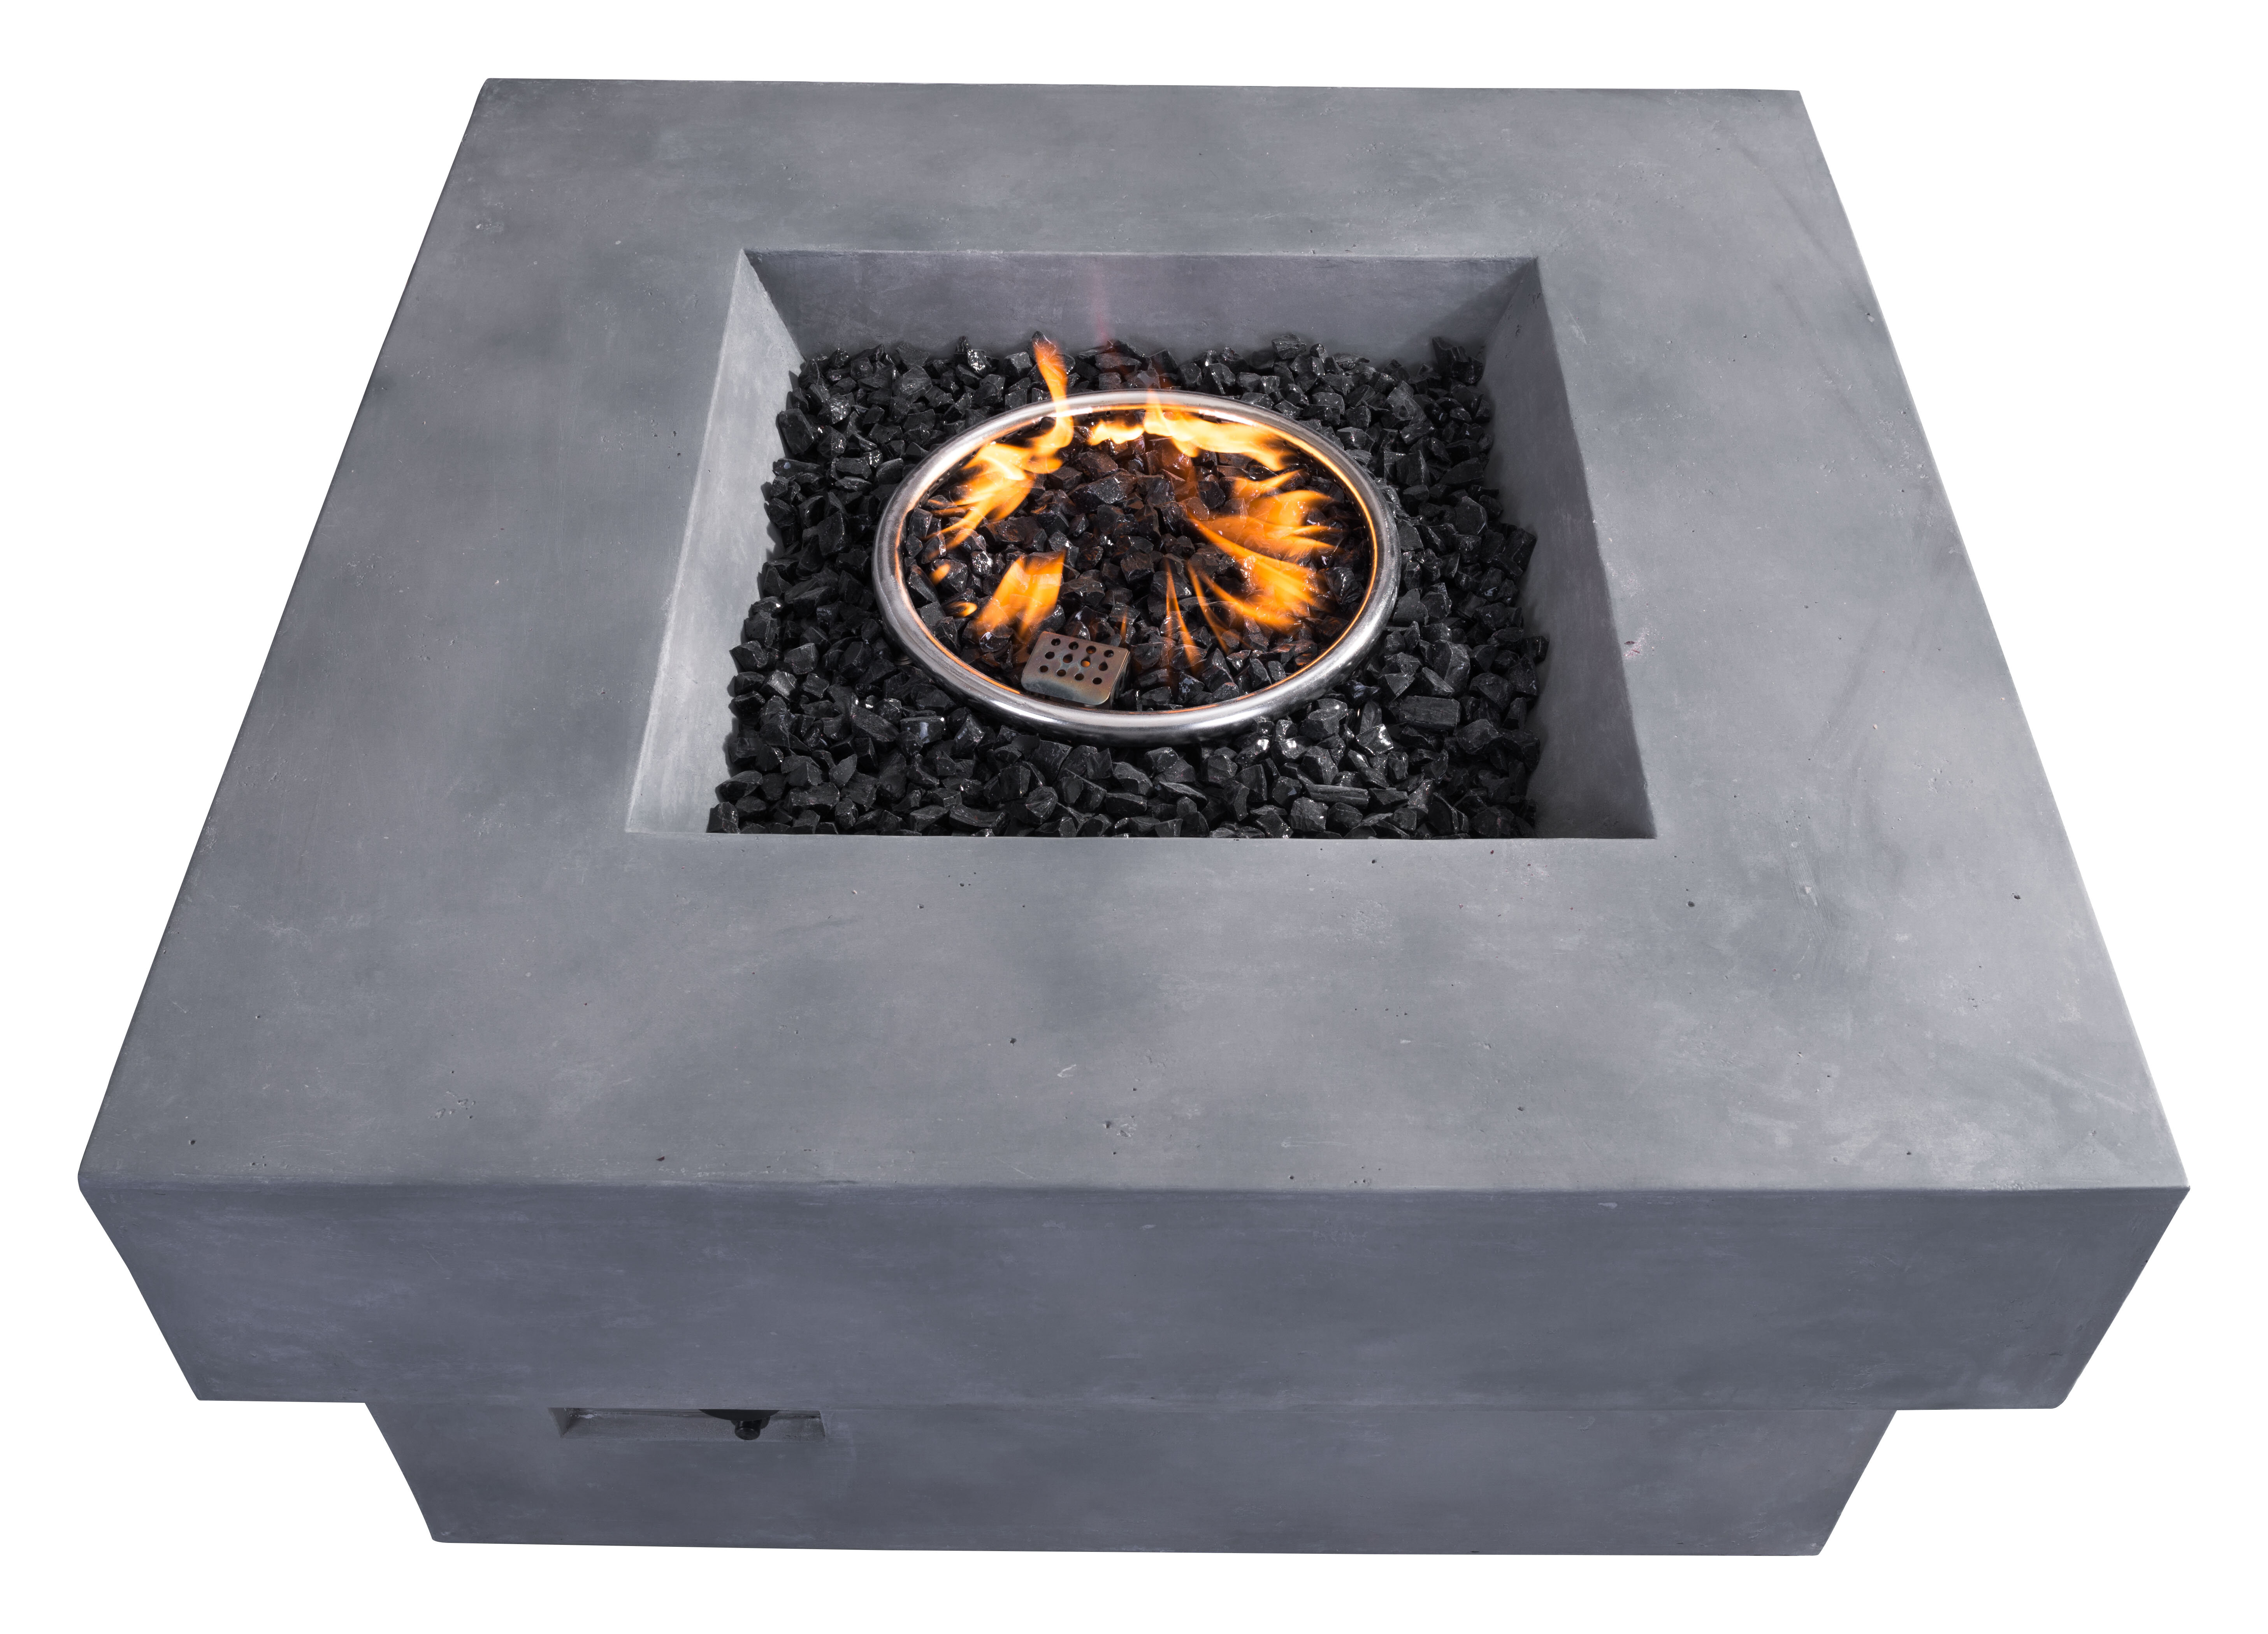 concrete pit real baltic fireplace reviews small propane table wayfair outdoor flame fire pdx